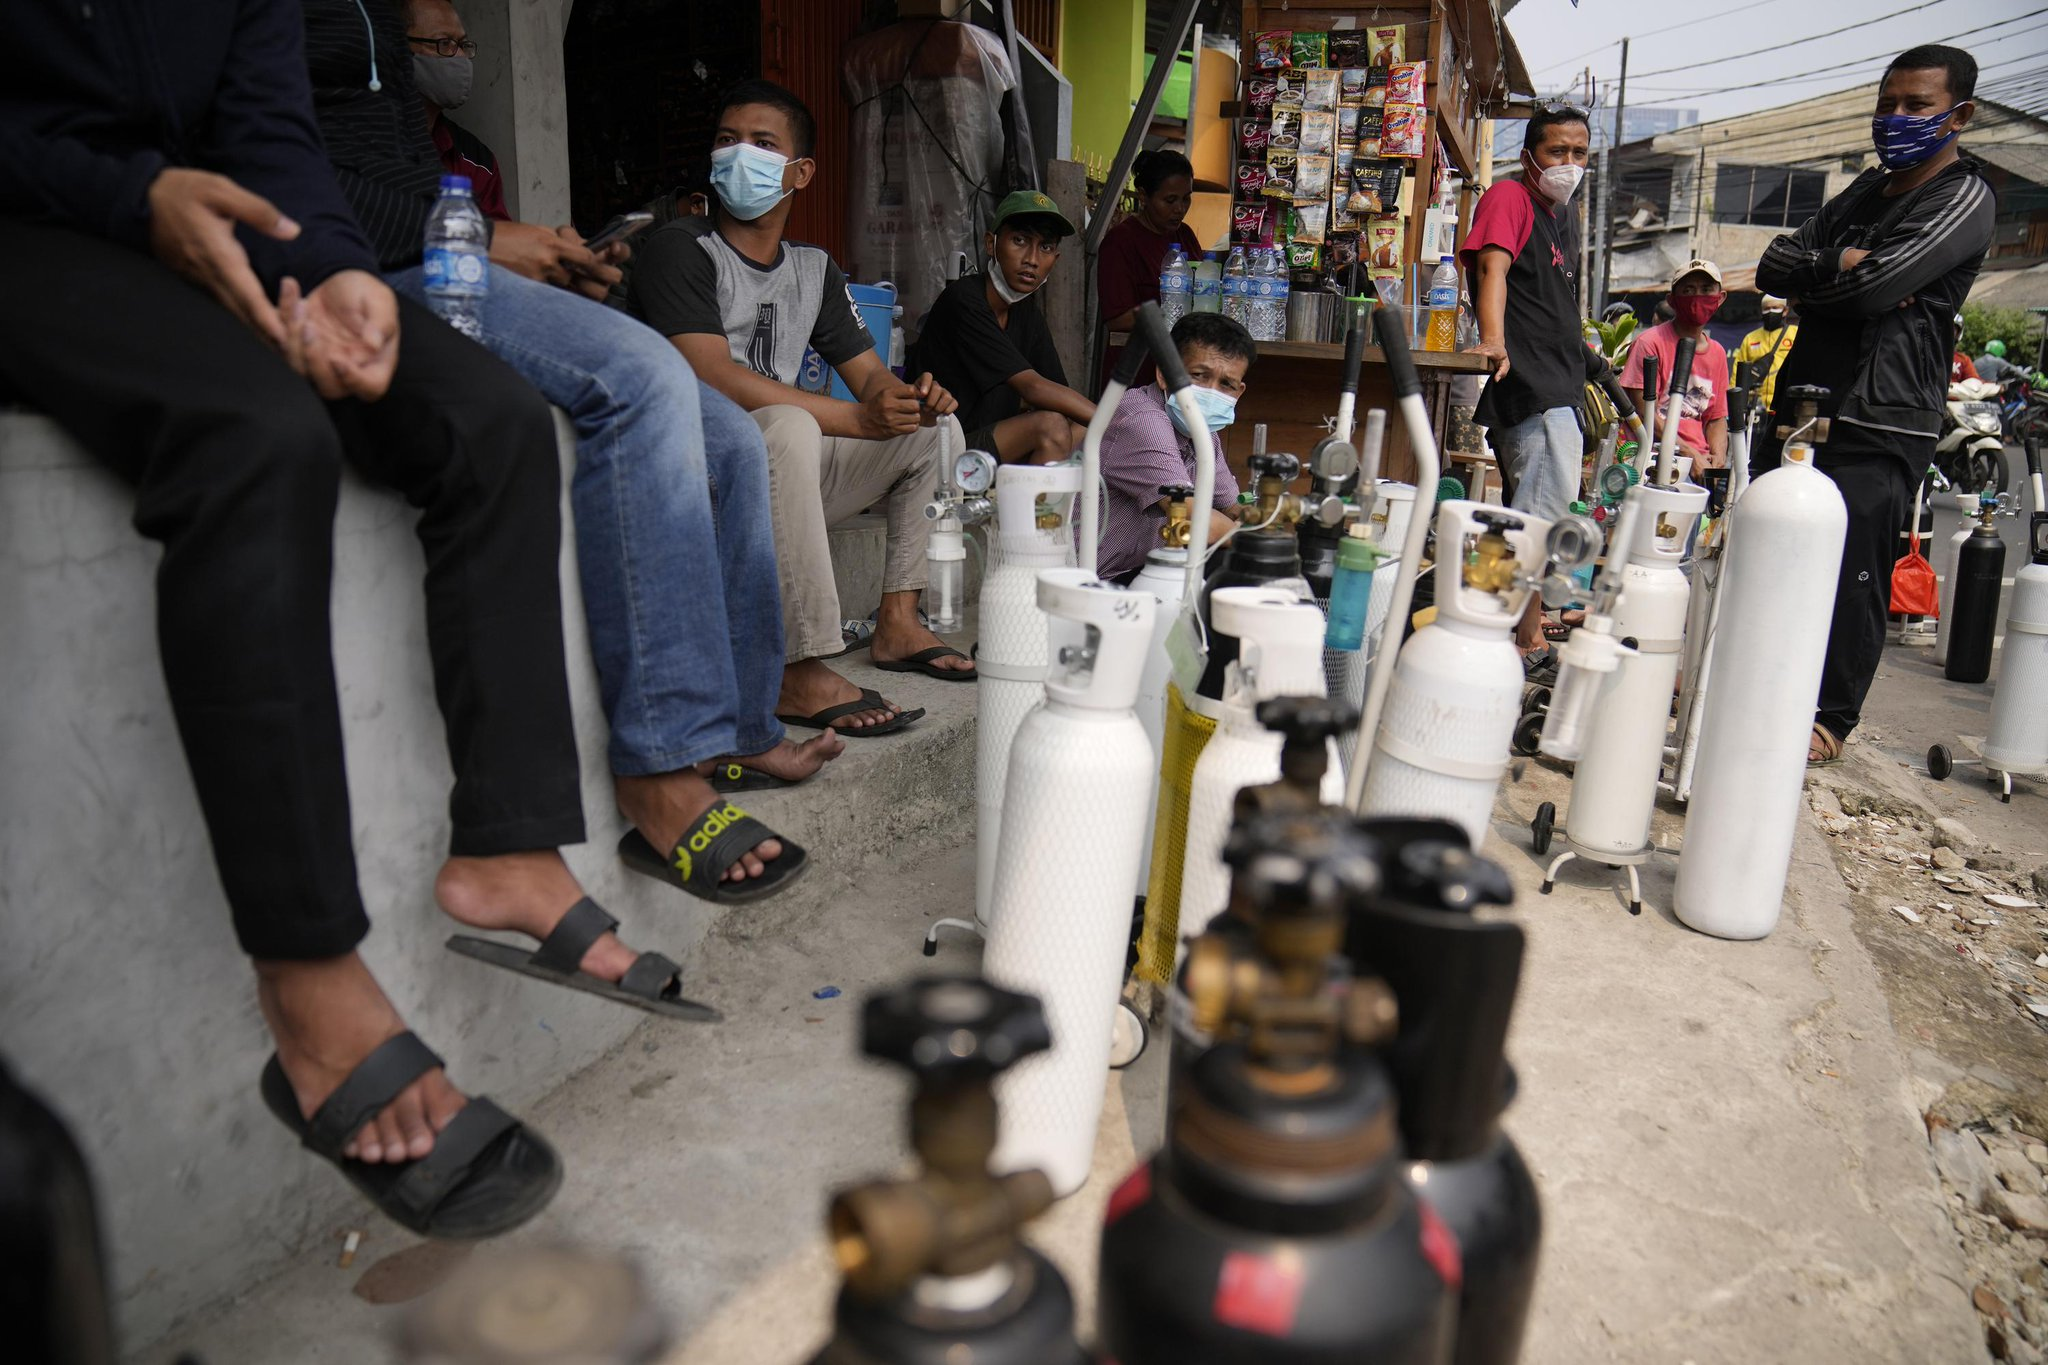 Death rates soar in Southeast Asia as virus wave spreads Photo